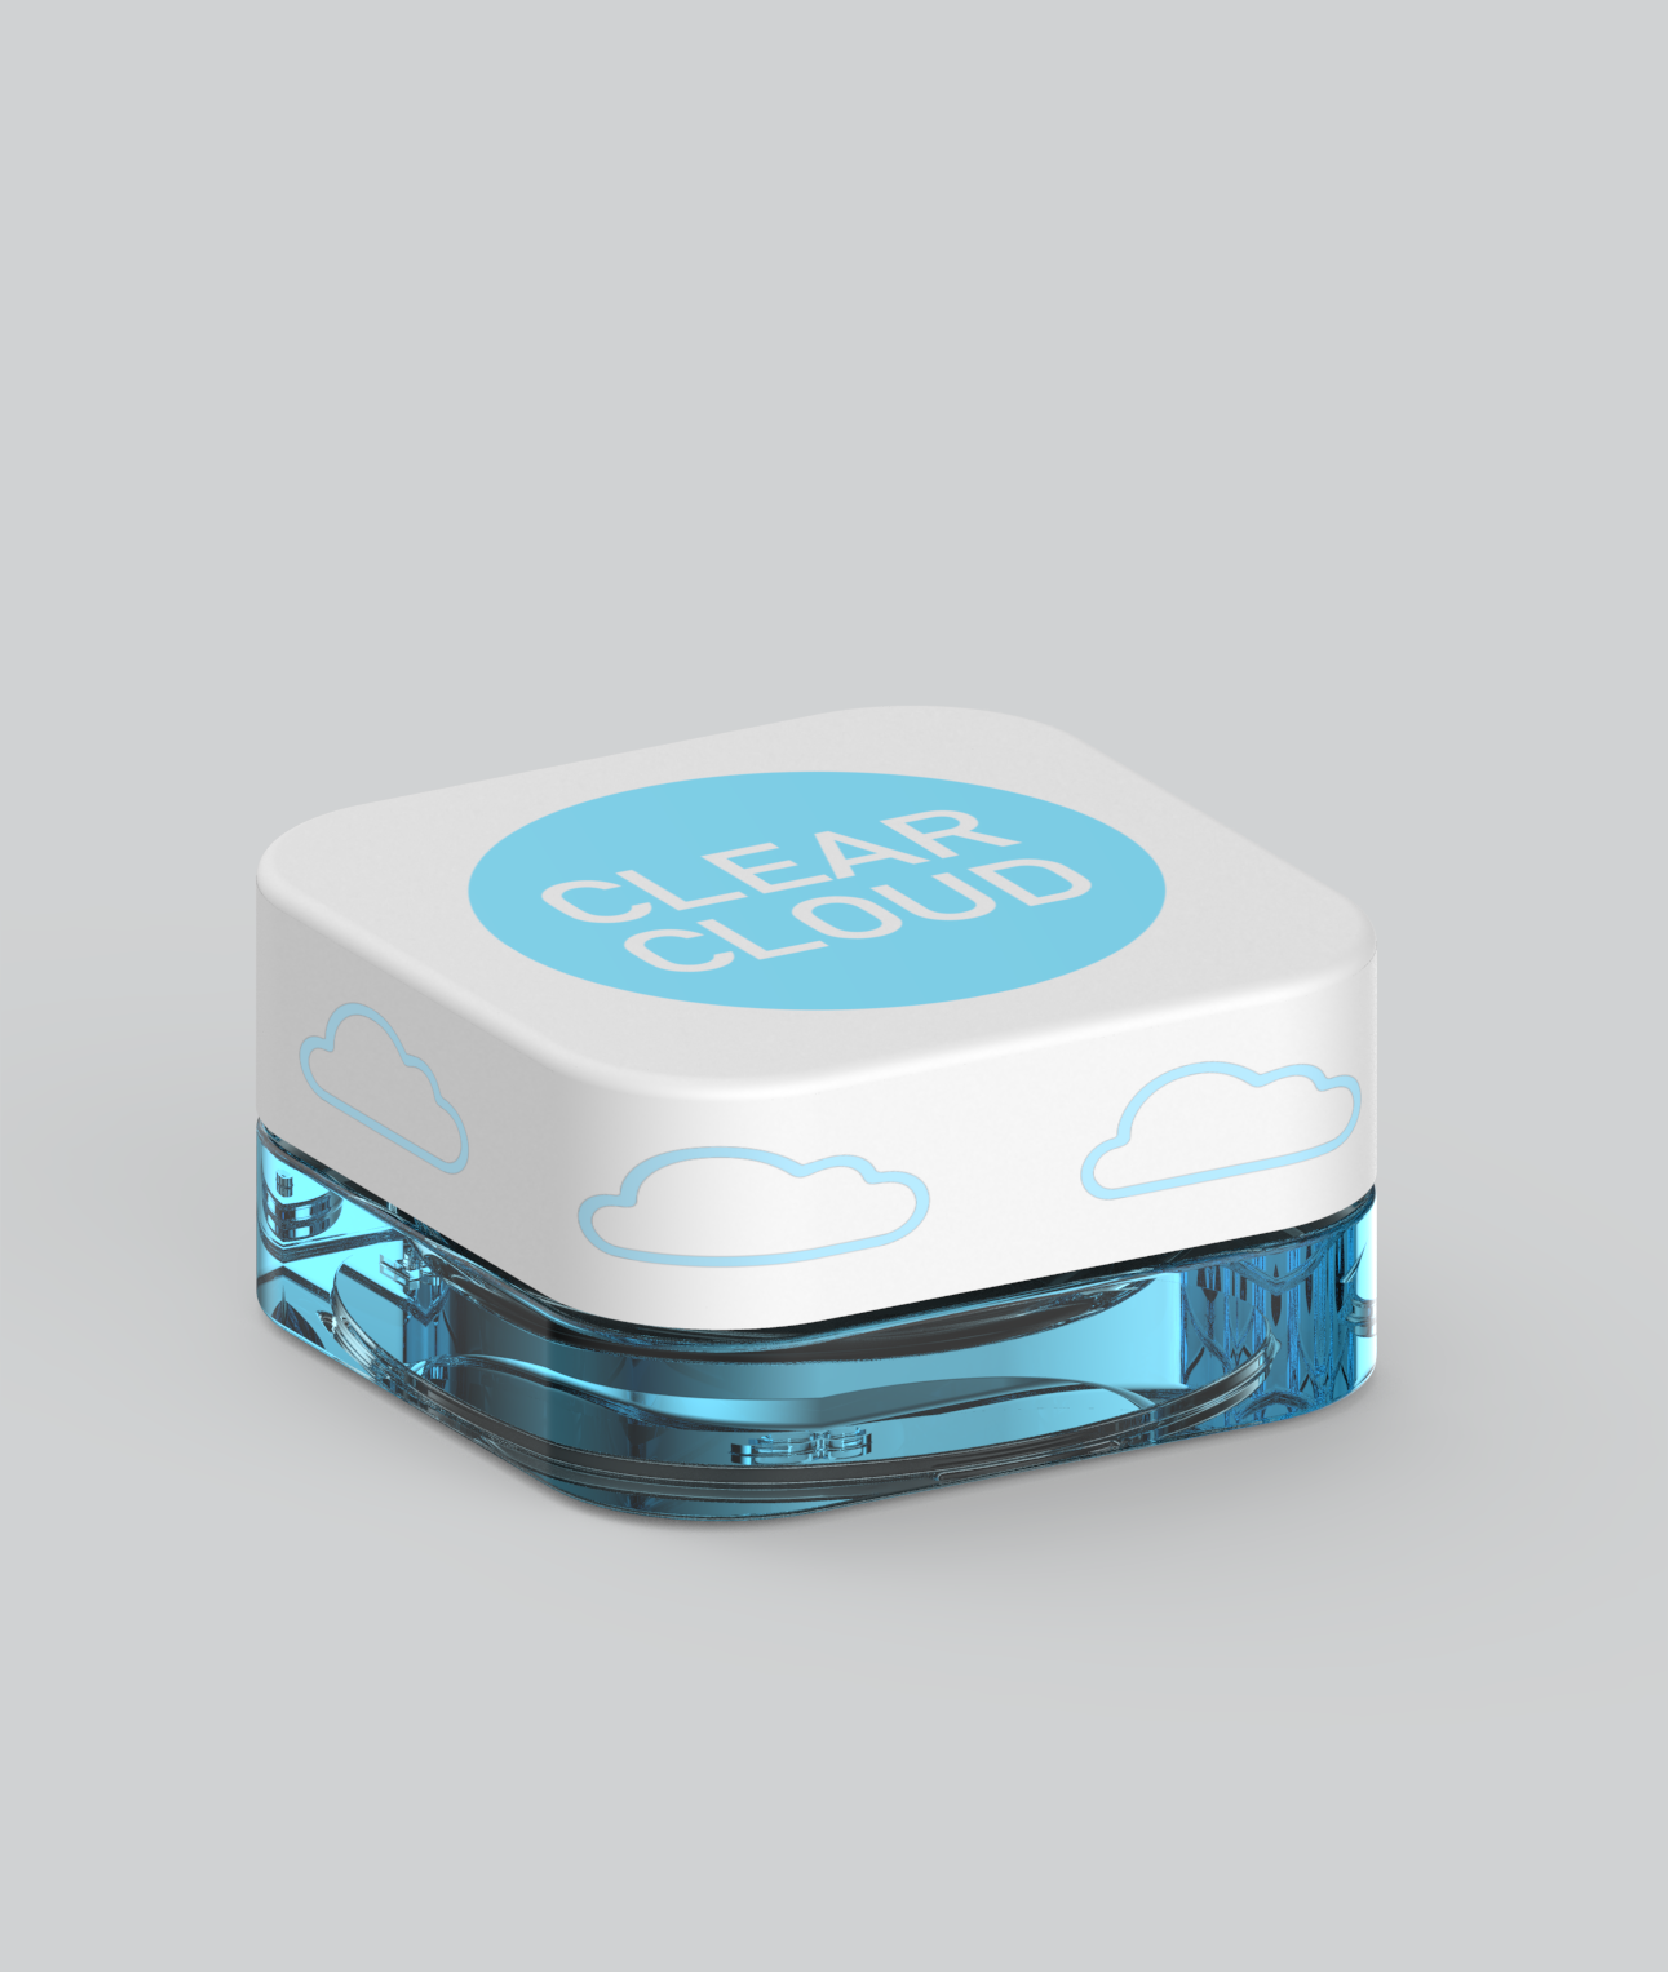 clear-cloud-custom-softsquare-custom-concentrate-containers